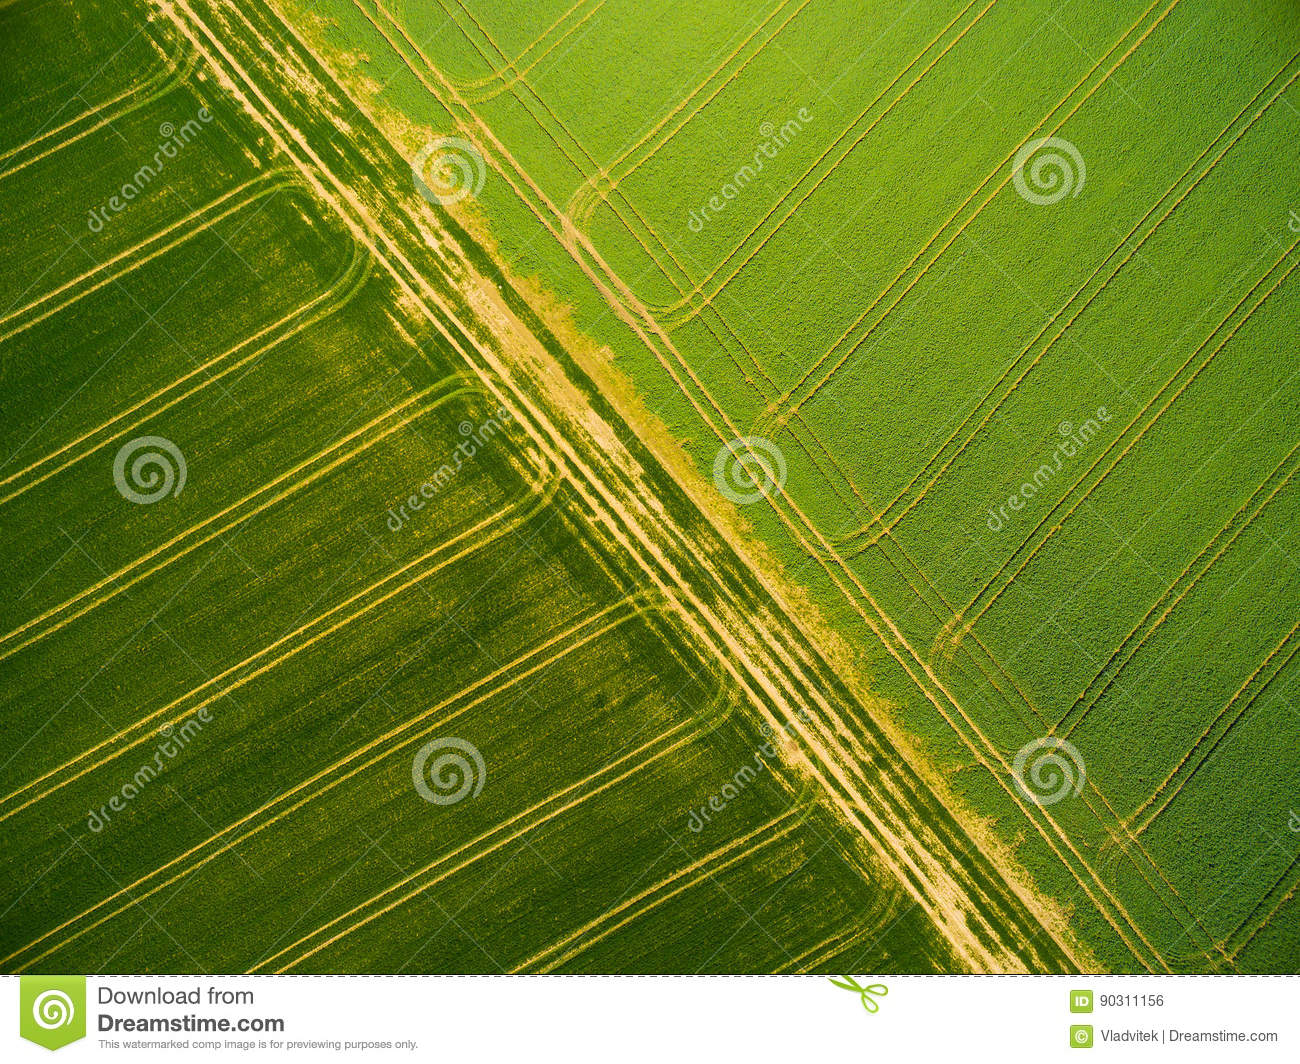 Wheat and rapeseed fields with tractor tracks.